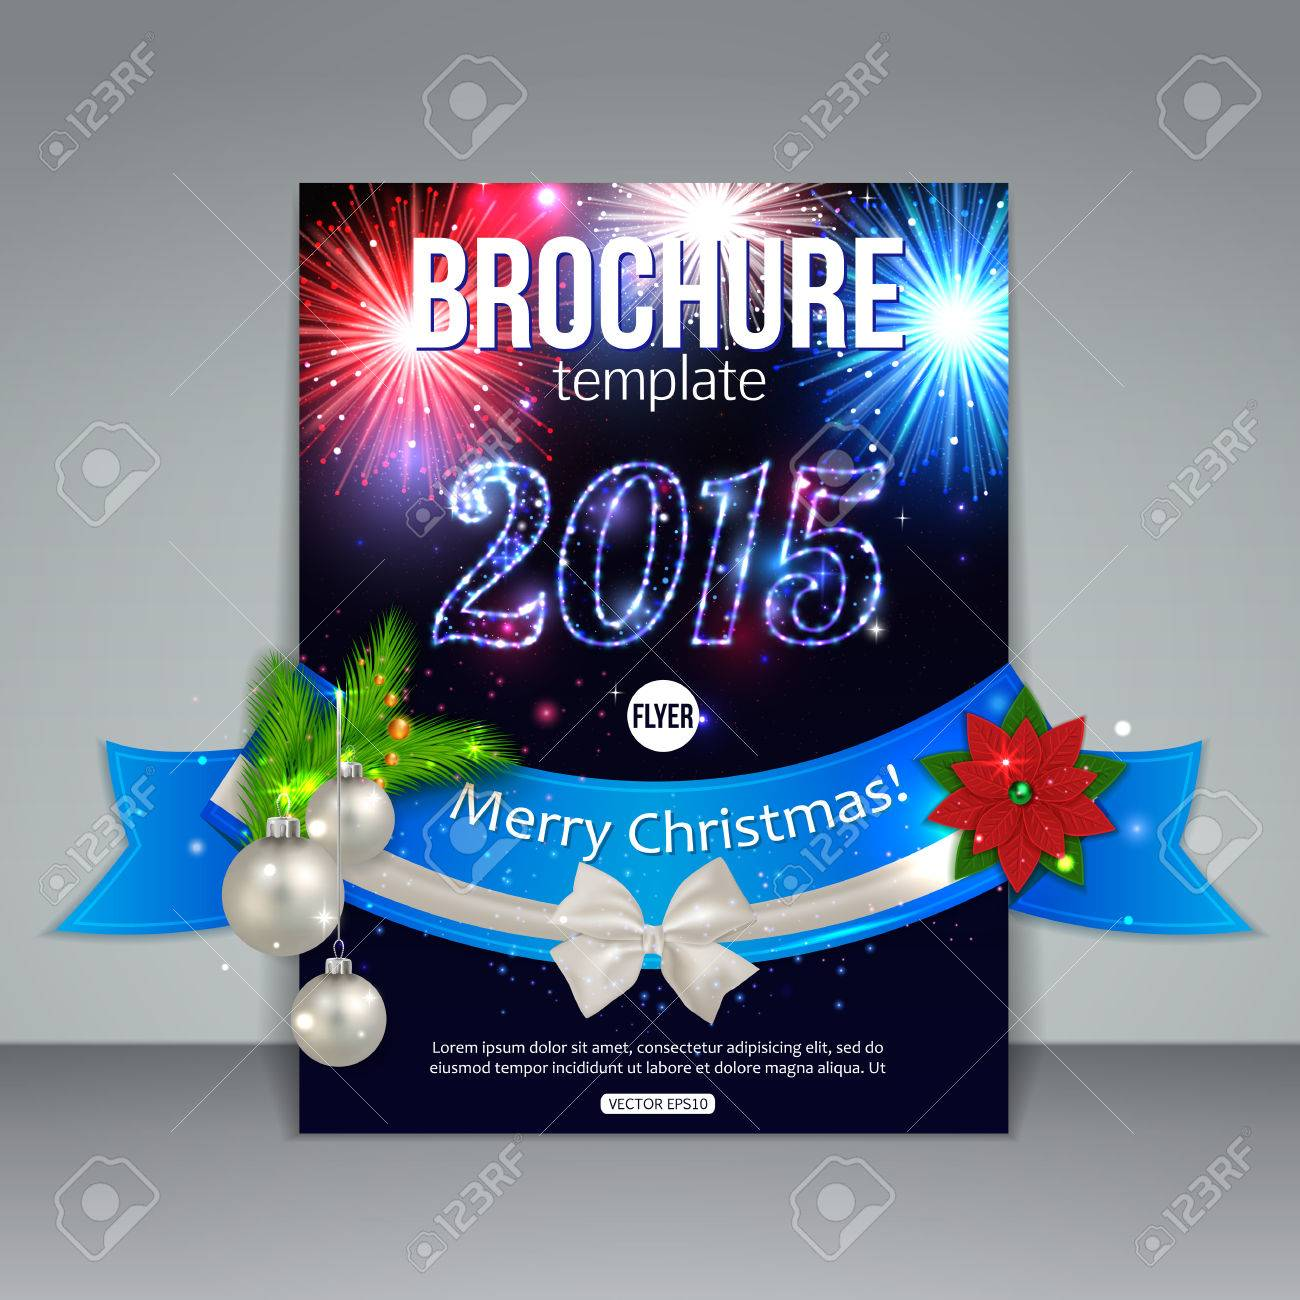 christmas brochure template abstract flyer design xmas christmas brochure template abstract flyer design xmas fireworks fir tree white bow